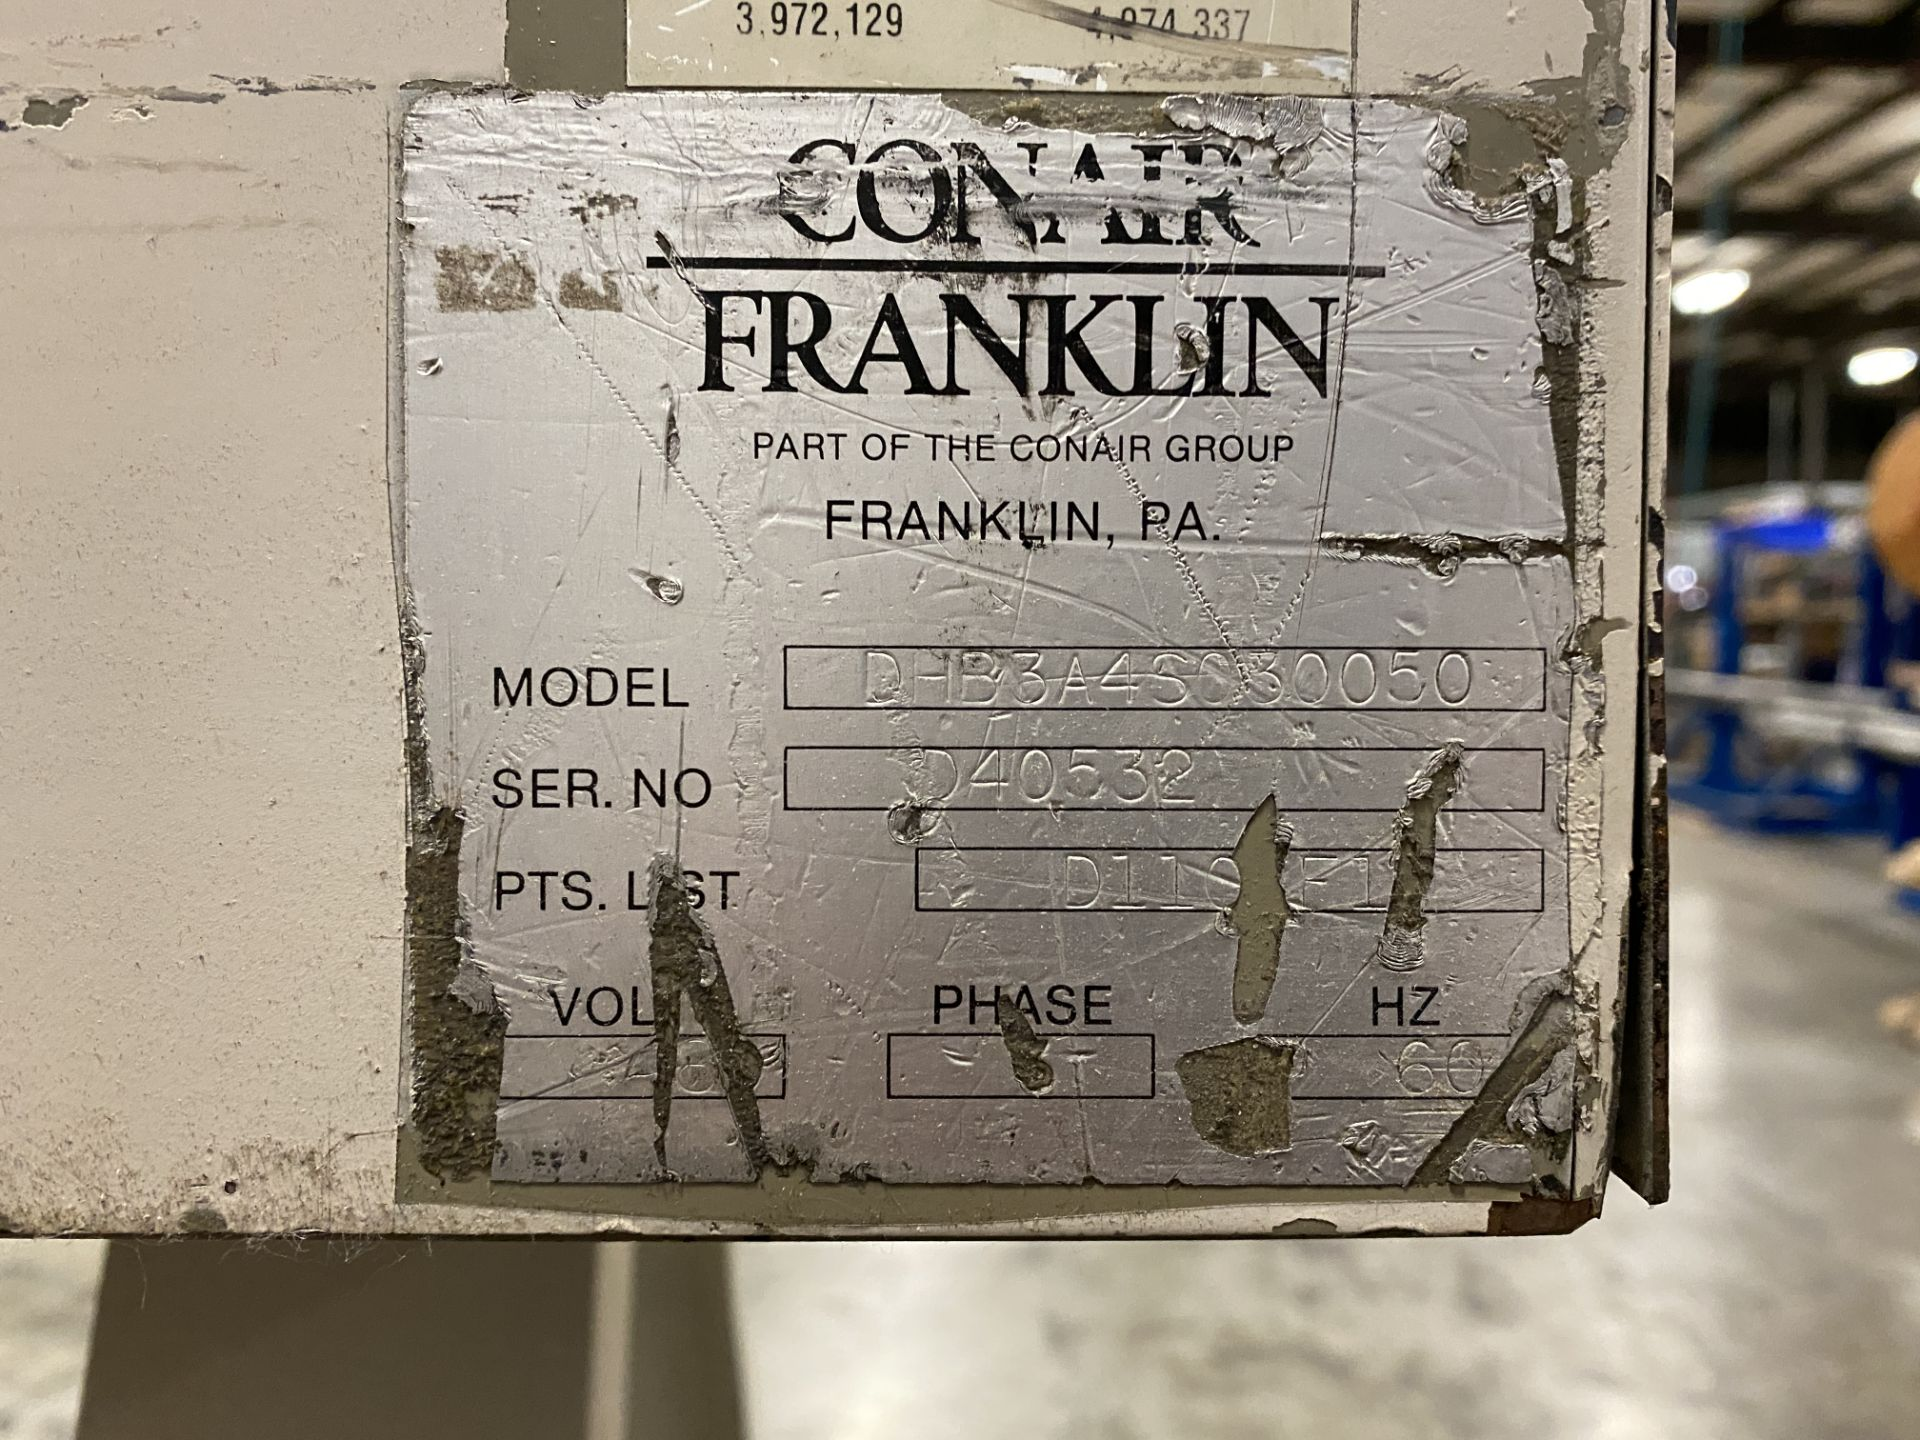 Conair Franklin DHB3A4S030050 Machine Mount Dryer - Image 7 of 8